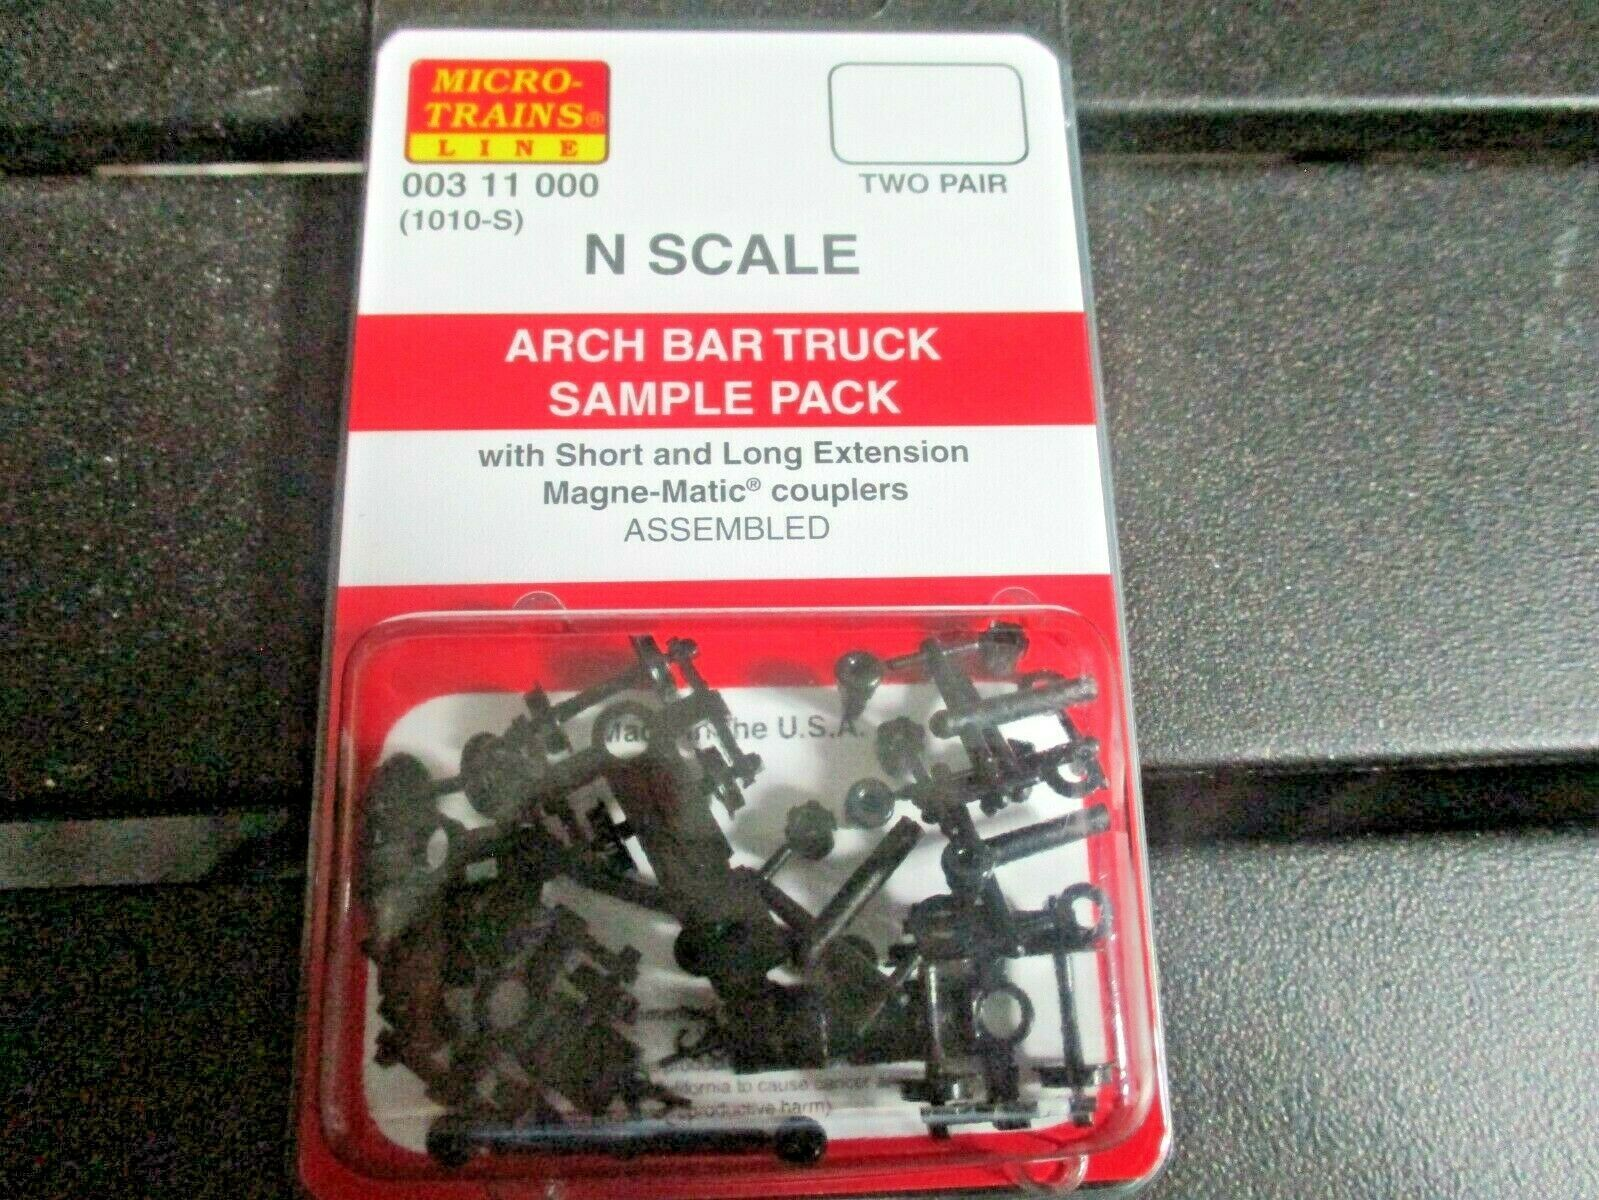 Micro-Trains Stock # 00311000 ARCH BAR Truck Sample Pack Short & Long Extension